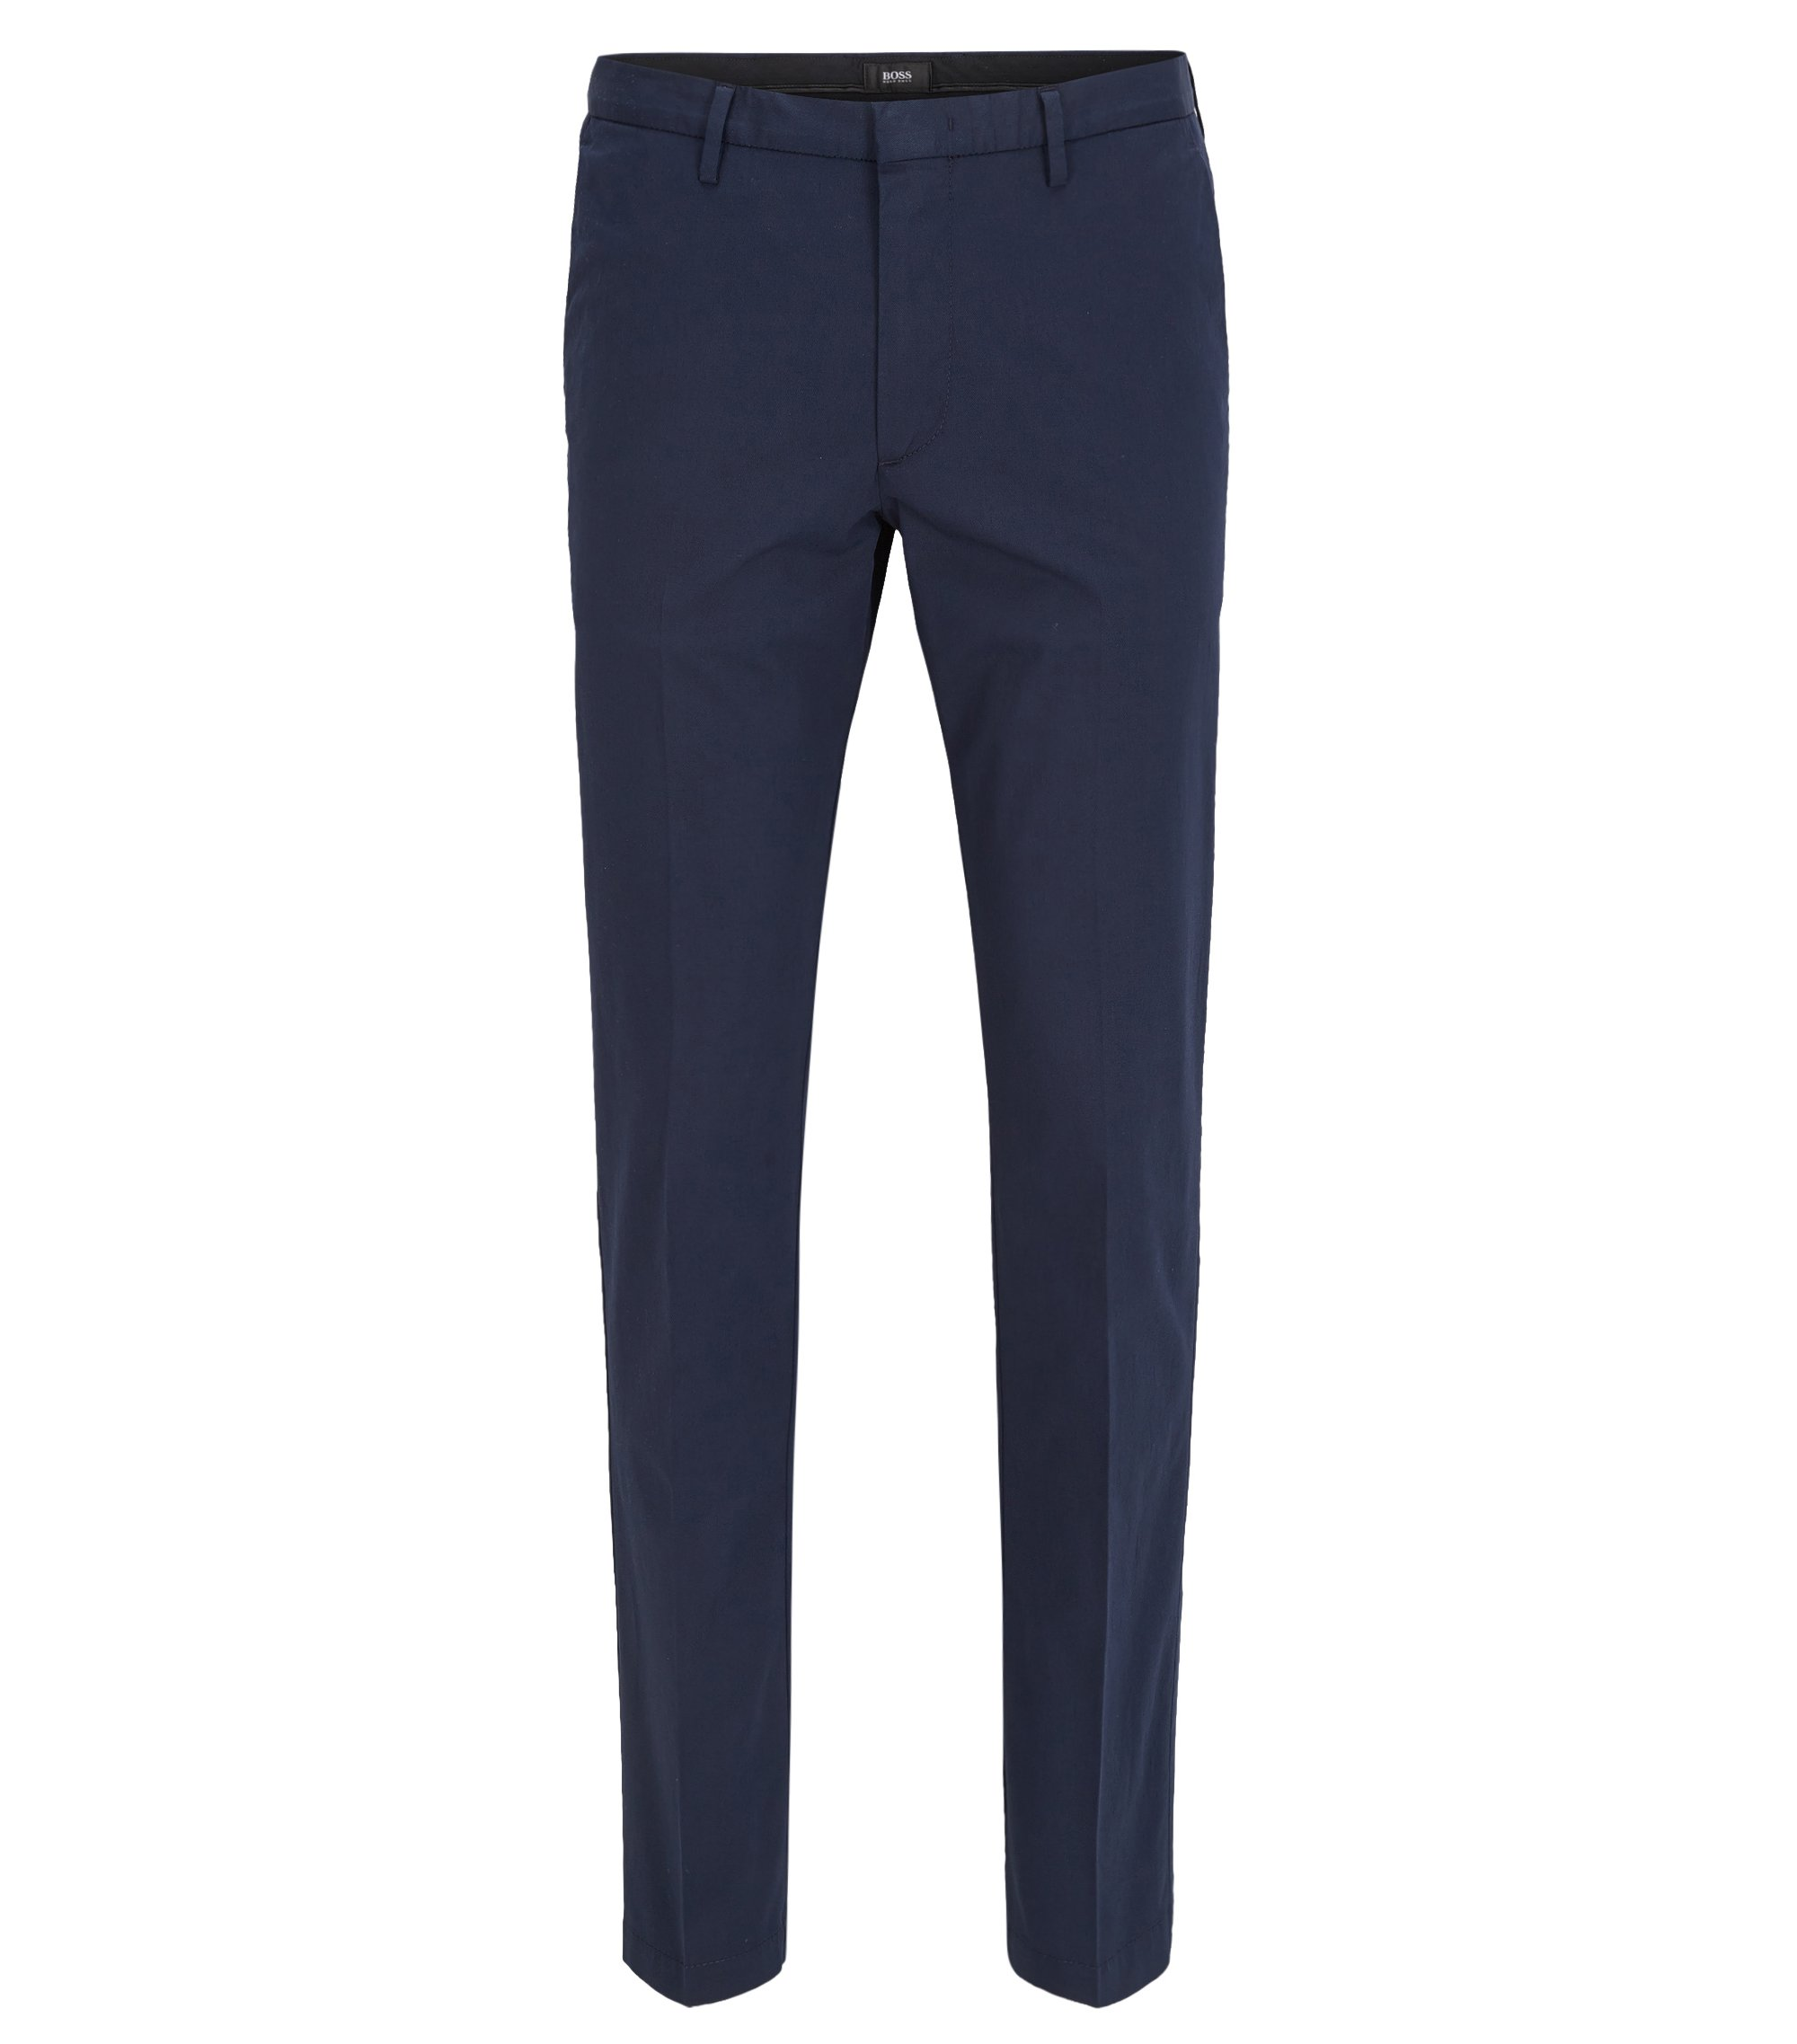 Italian Stretch Cotton Pant, Slim Fit | Kaito Travel W, Dark Blue